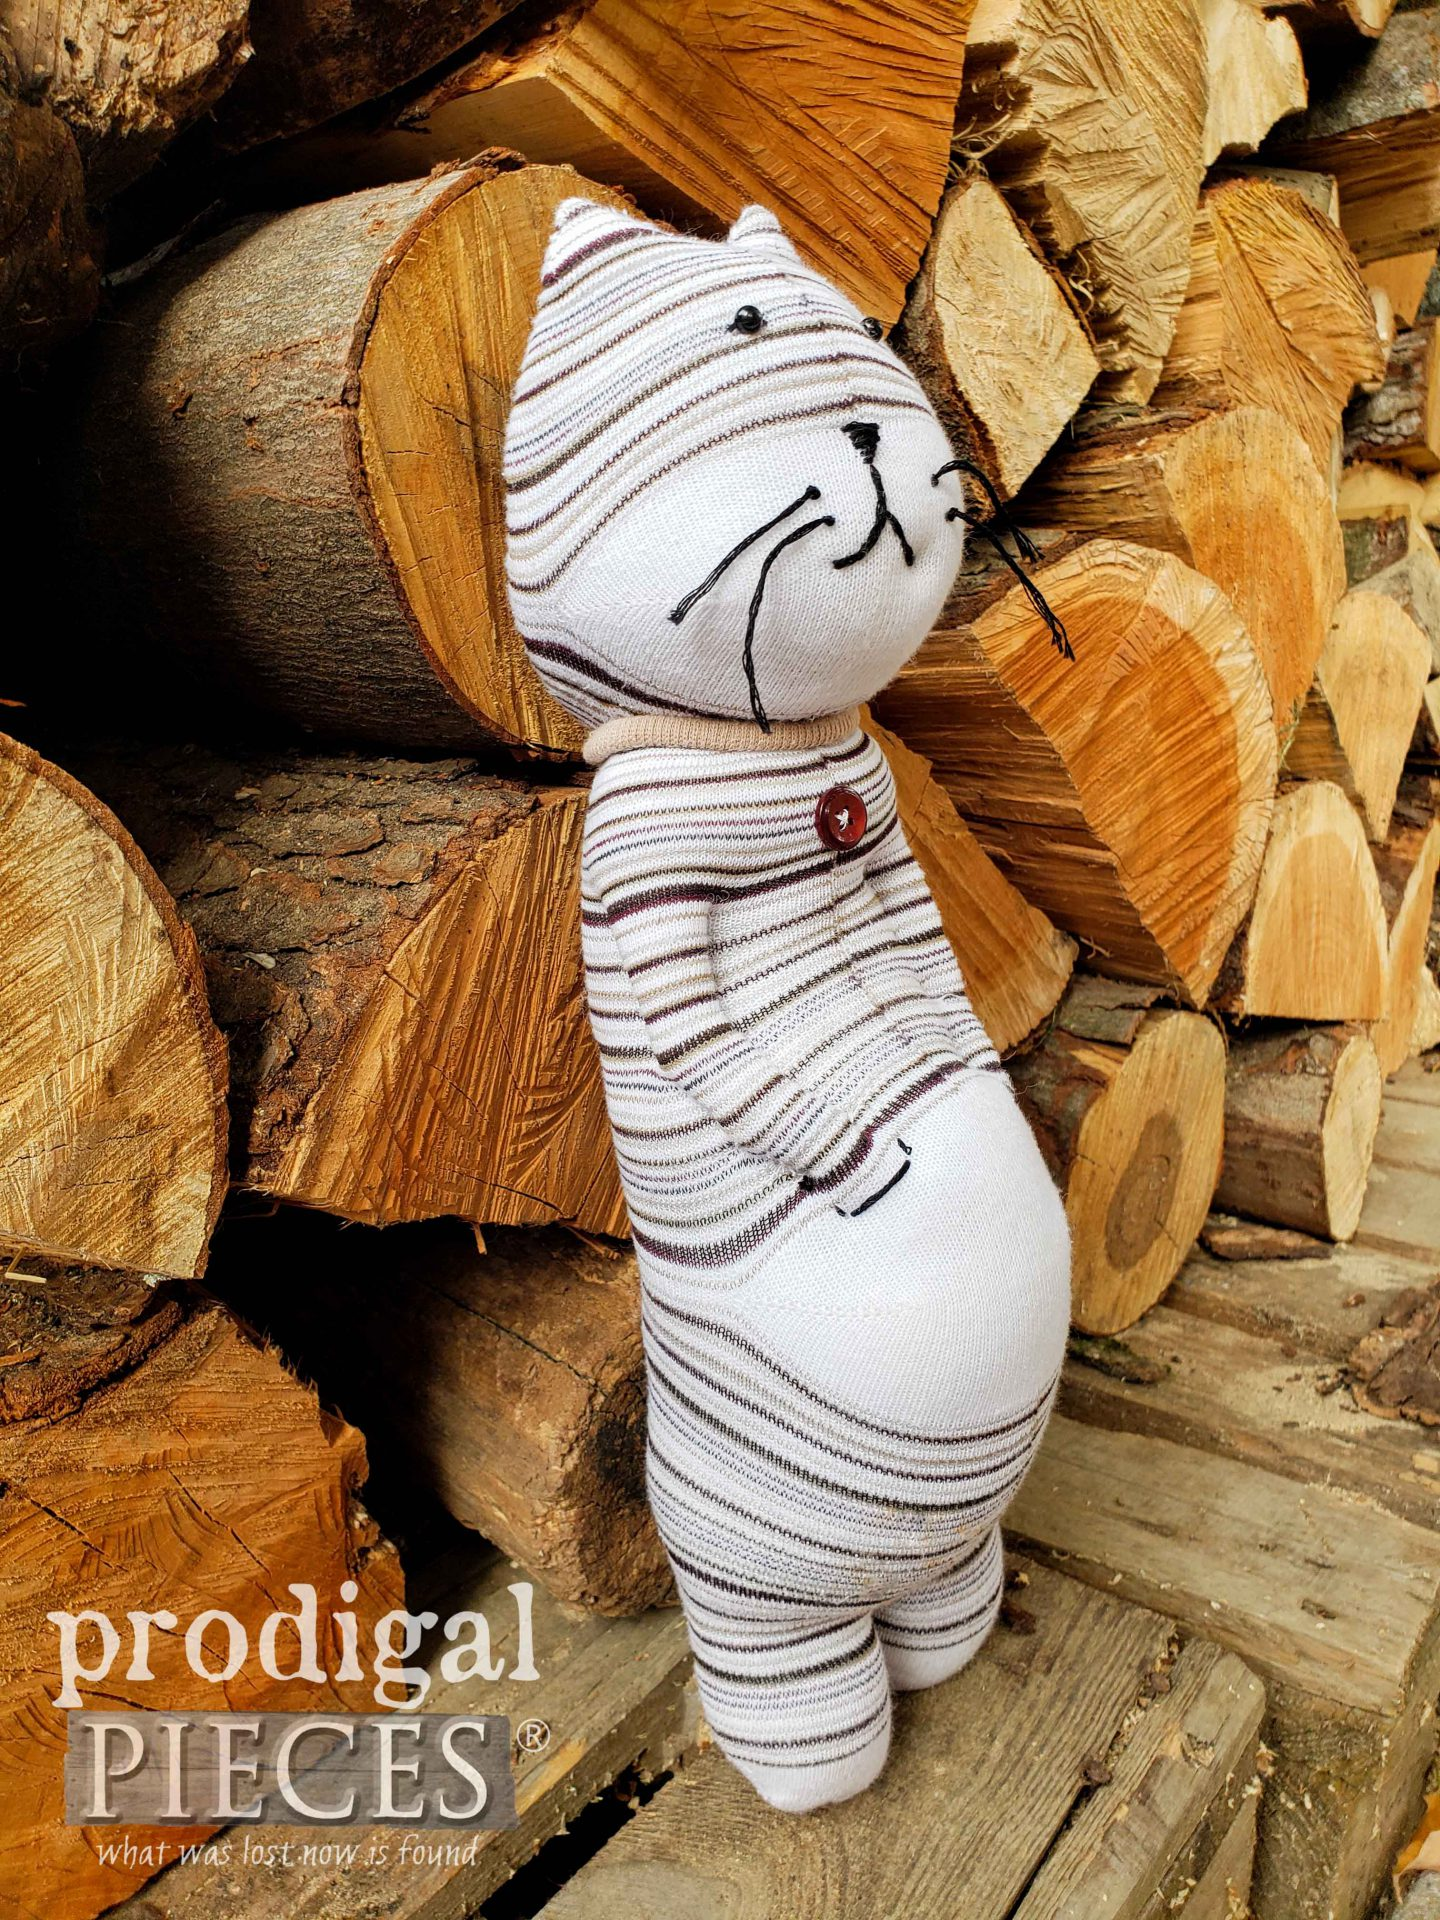 Handmade Sock Cat with an Attitude   Upcycled Sock Doll Fun by Larissa of Prodigal Pieces   prodigalpieces #prodigalpieces #handmade #toy #dolls #kids #crafts #sewing